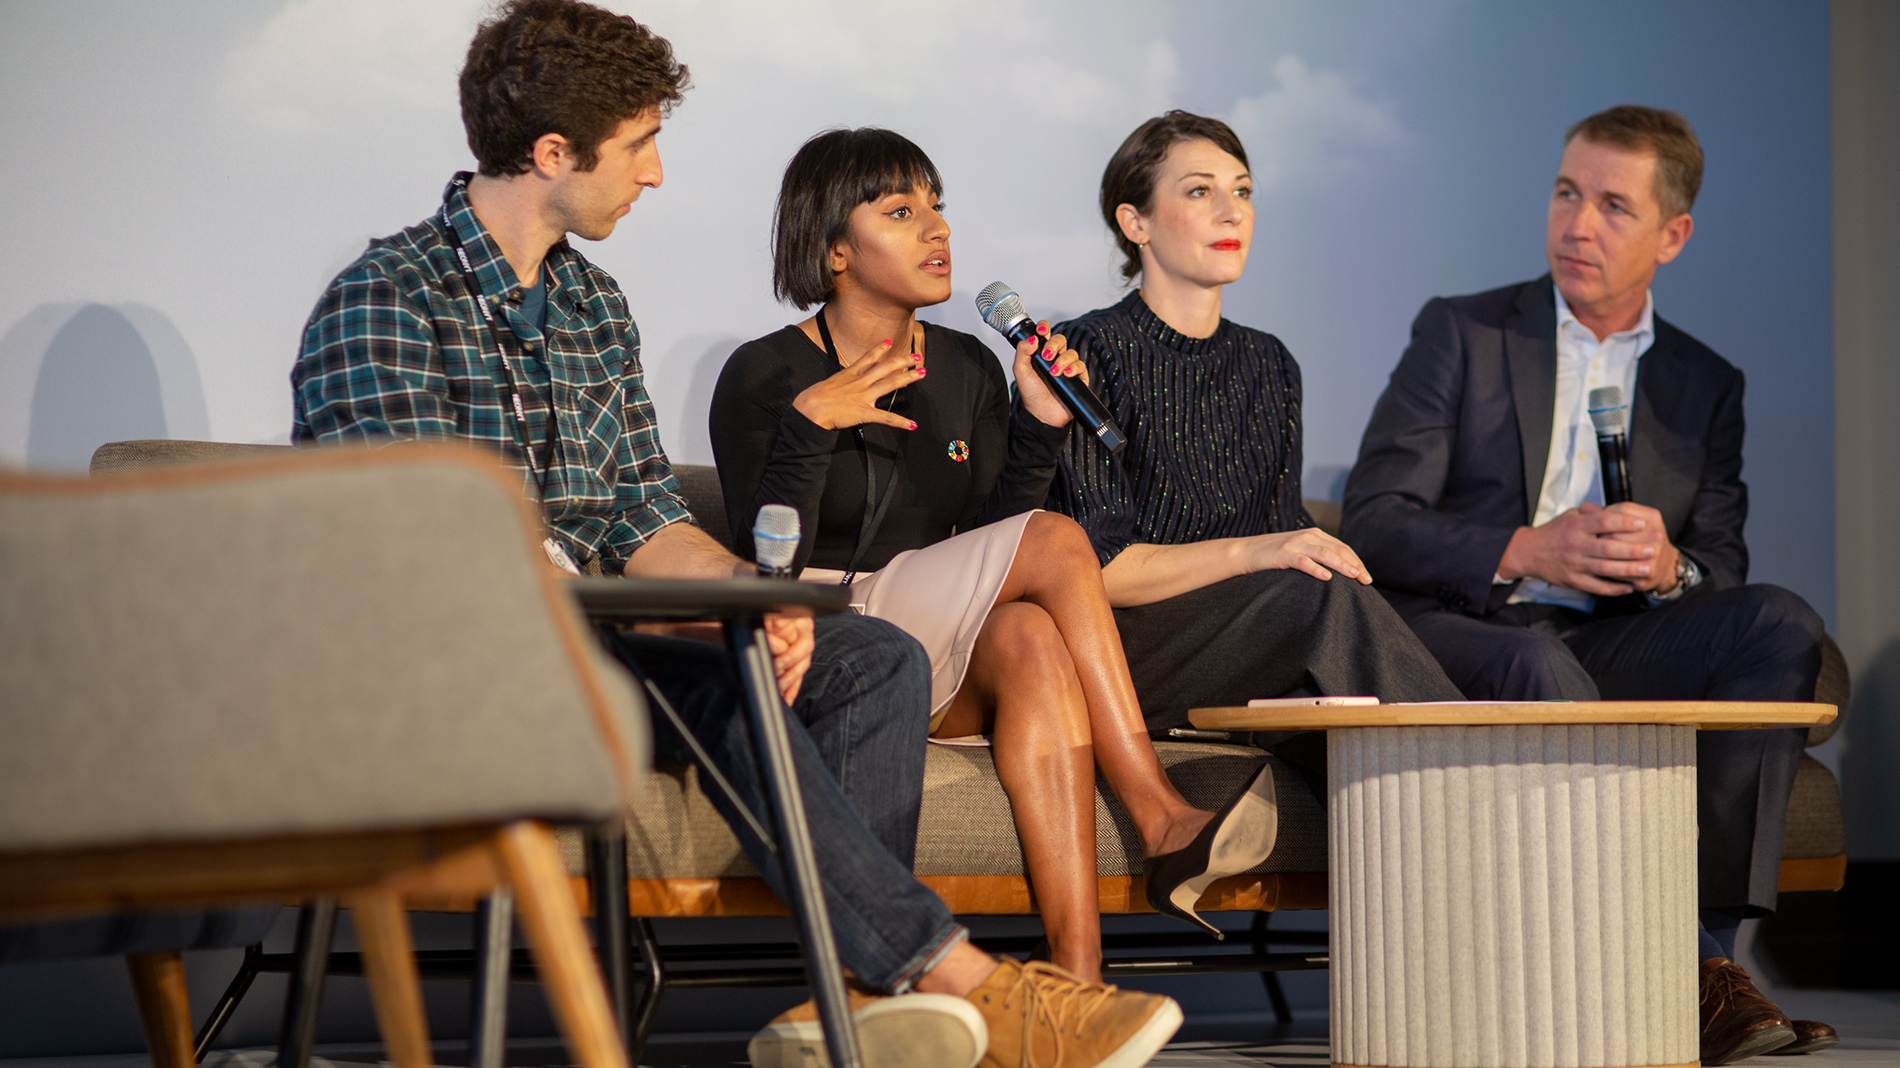 Panel Talk at Neonyt on SDGs and the fashion industry; from left to right: Zachary Angelini (Timberland), Kaira Shetty (Conscious Fashion Campaign), Geraldine de Bastion, Harold Weghorst (Lenzing) / Photo: Messe Frankfurt Exhibition GmbH